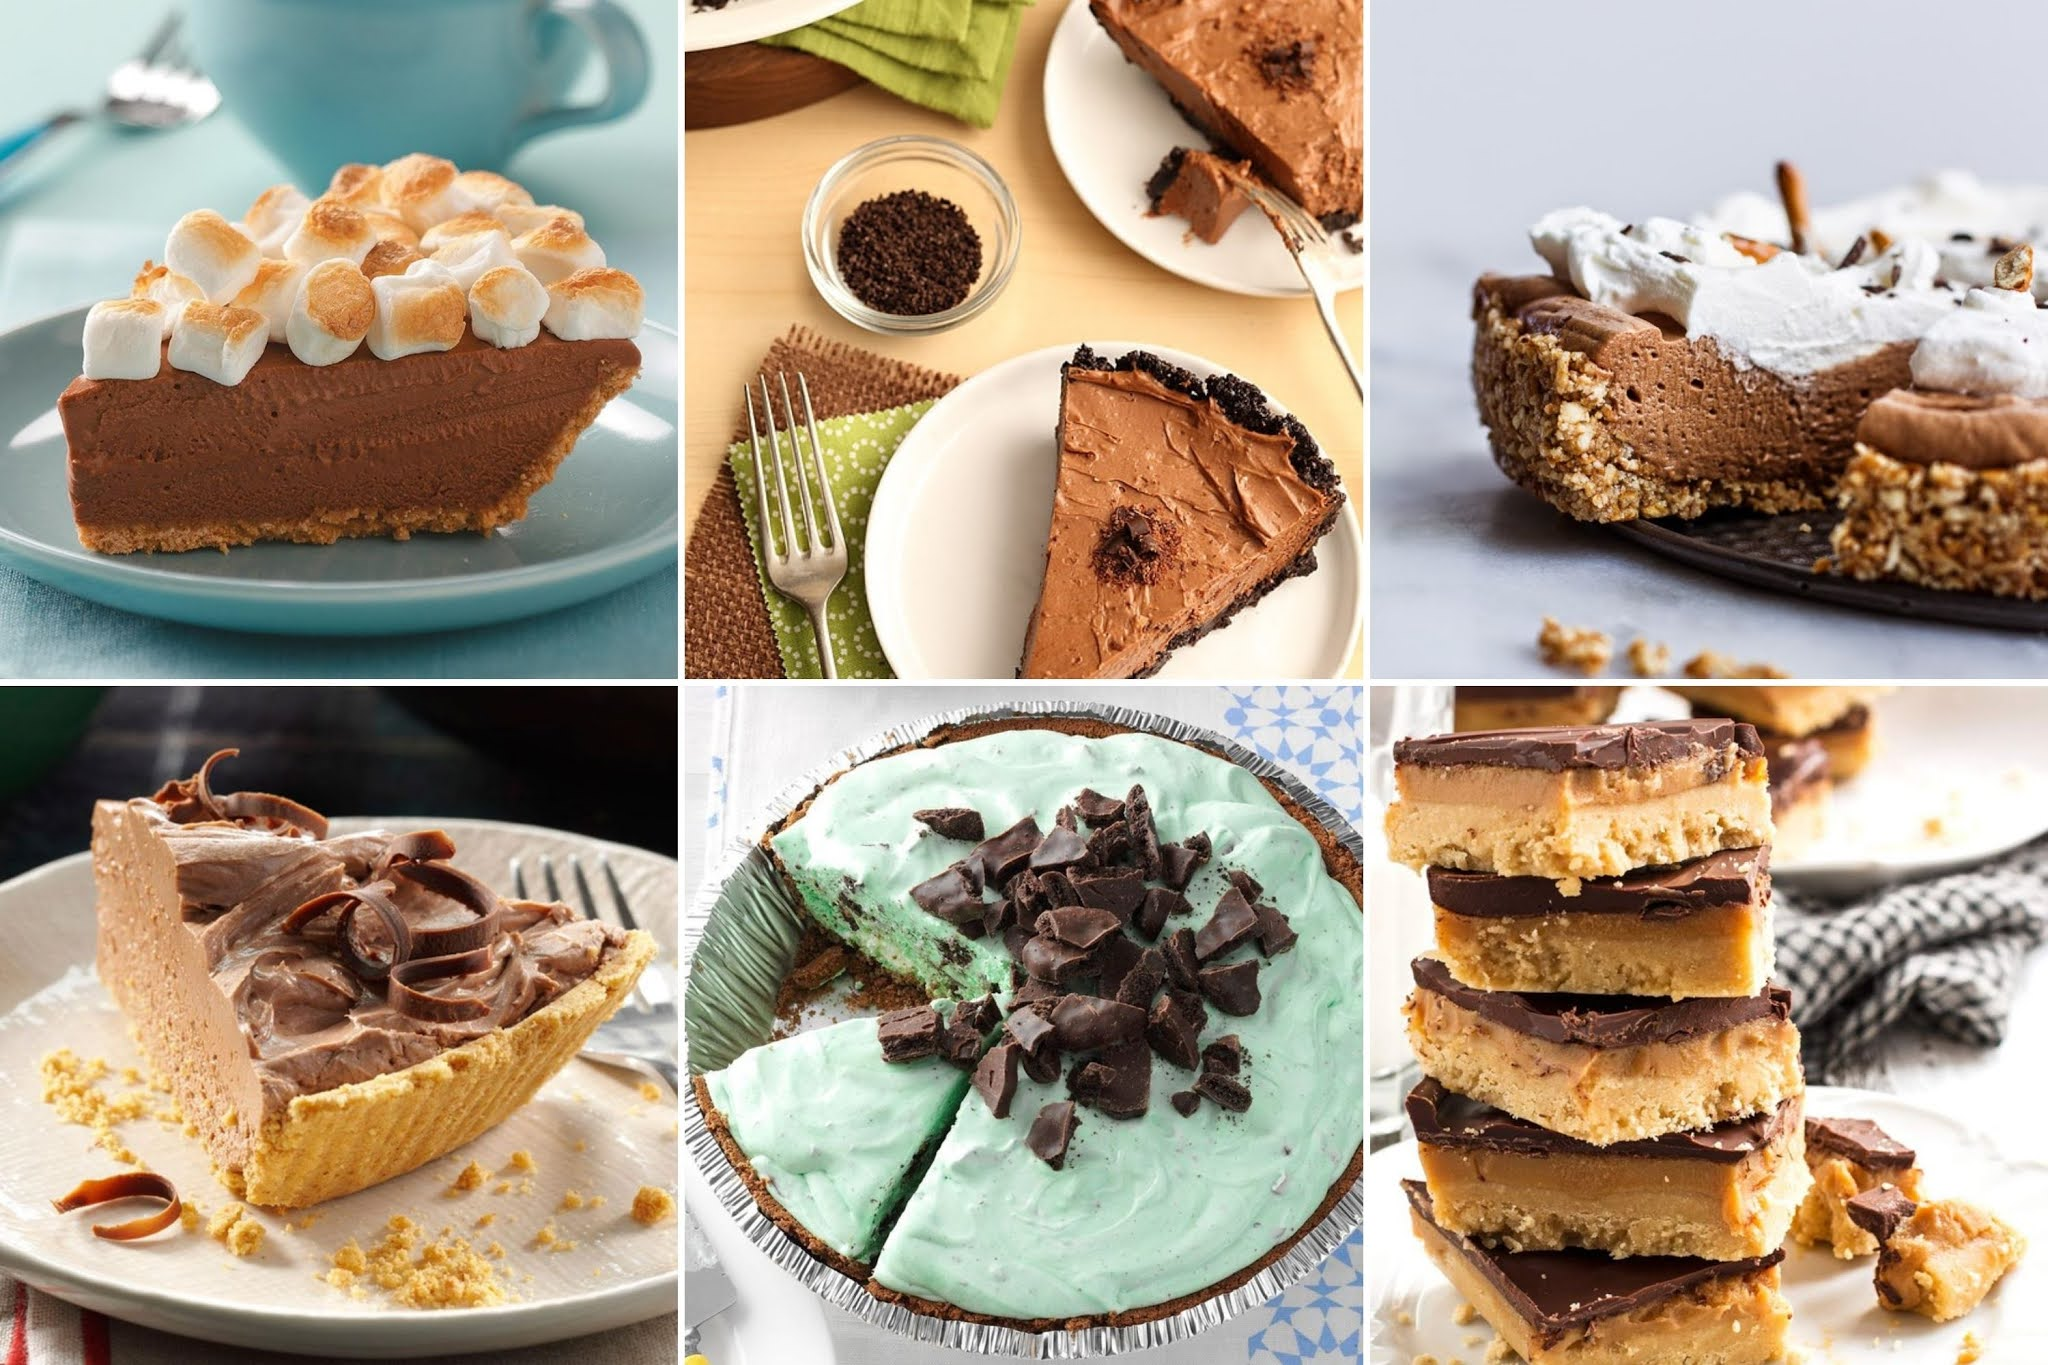 BEST 95+ NO BAKE THANKSGIVING DESSERTS RECIPES